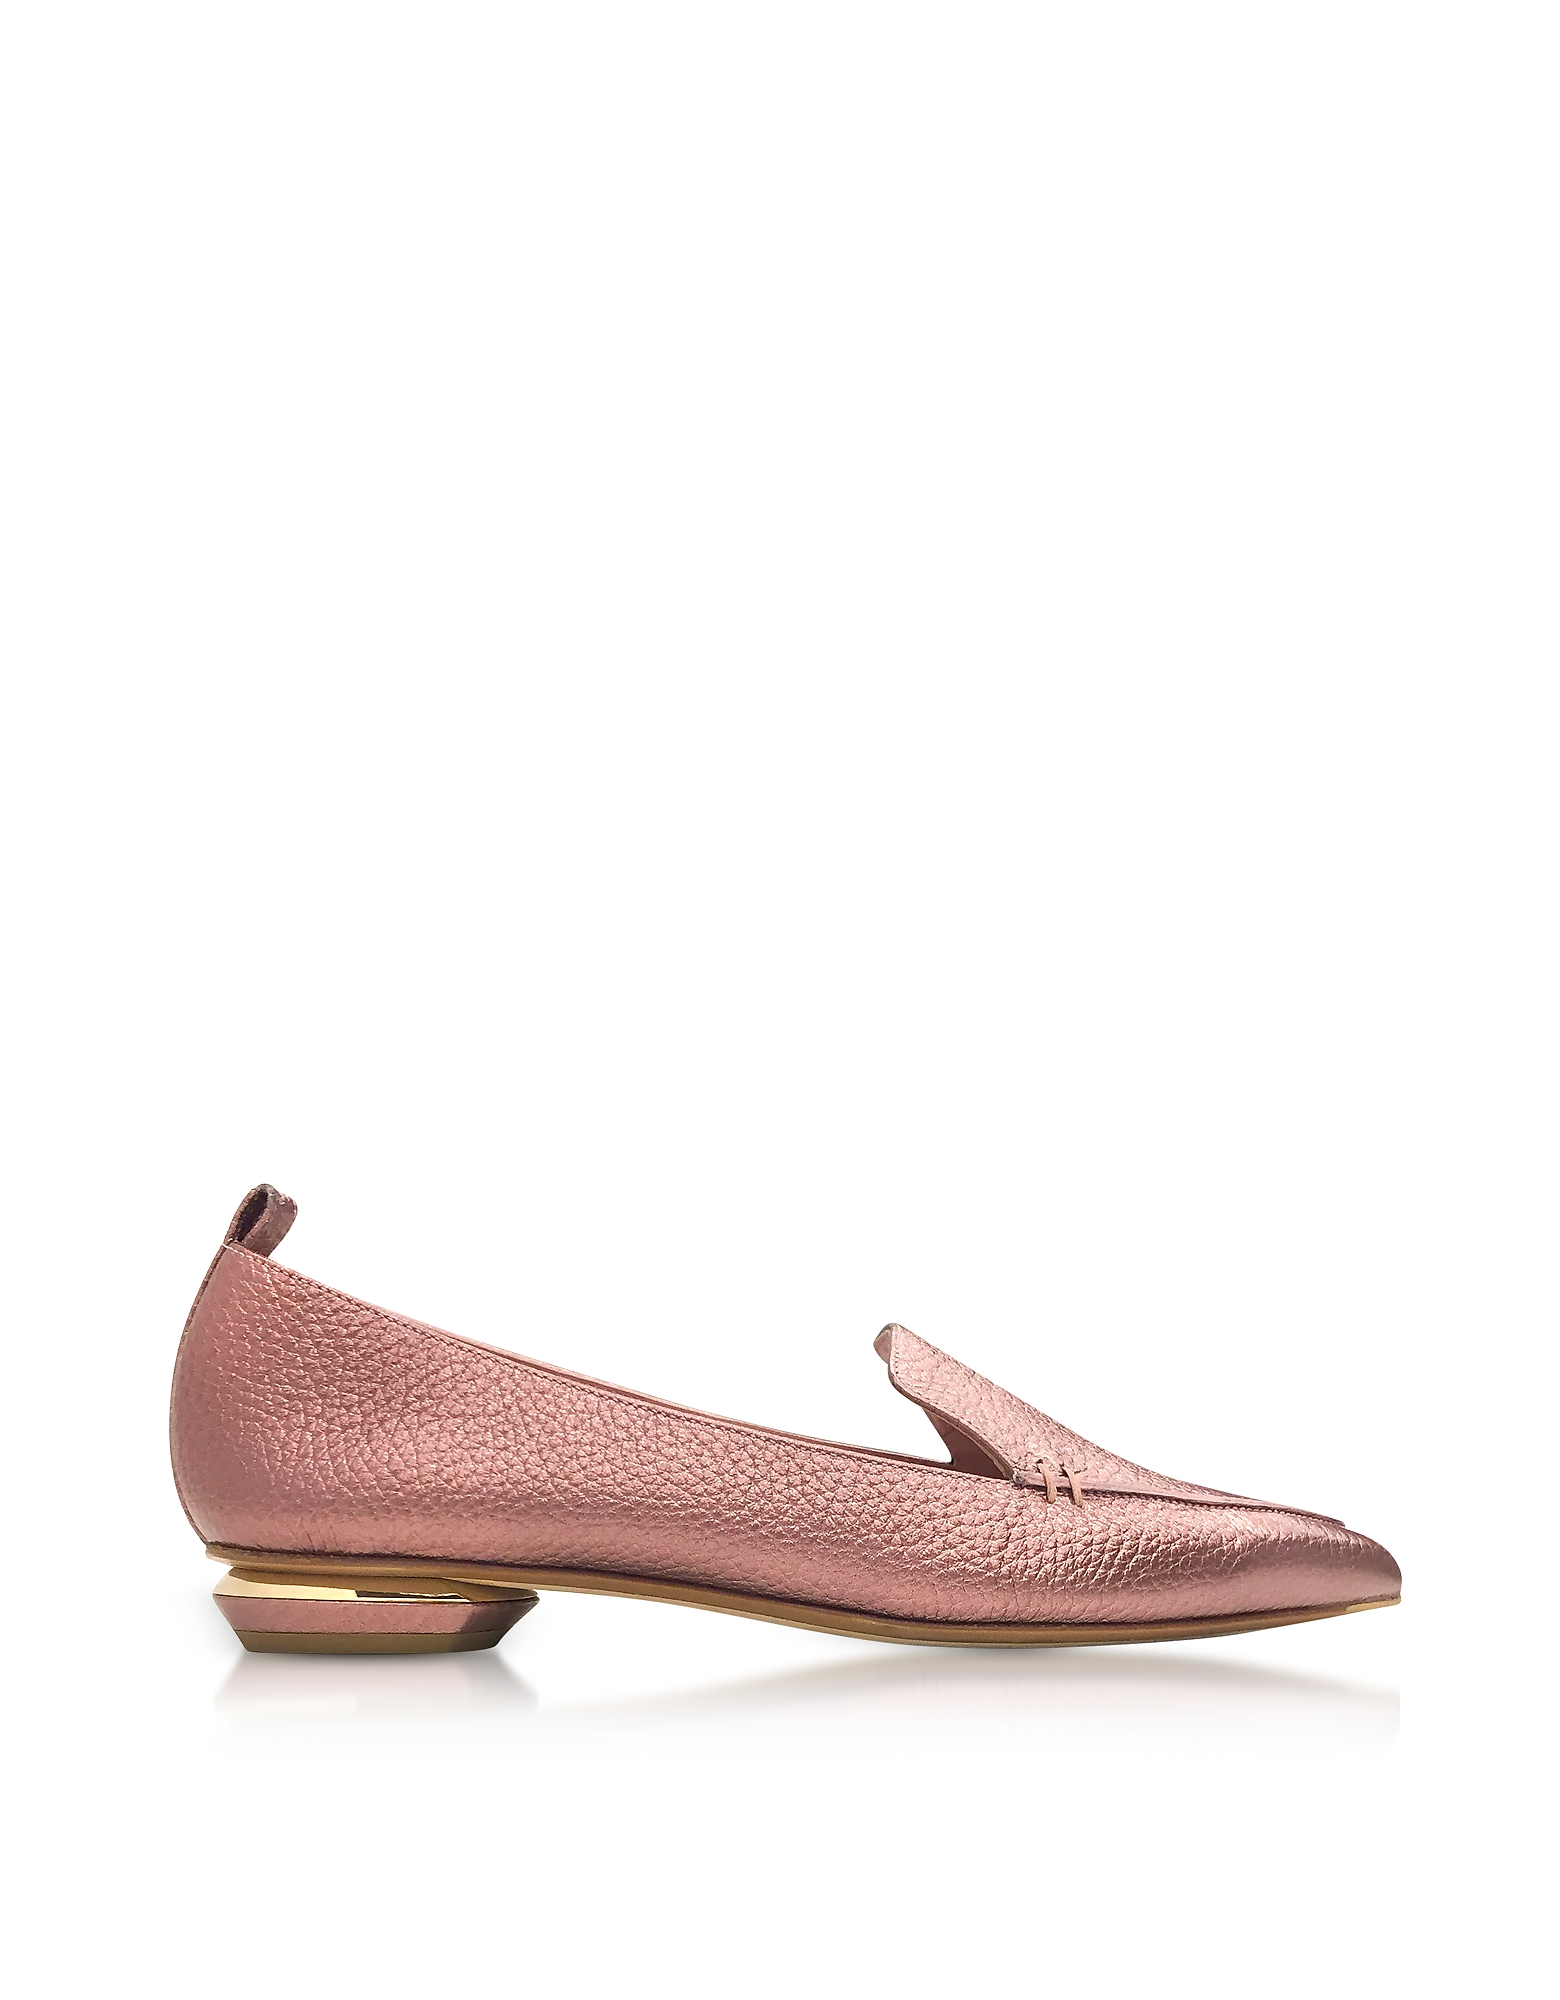 Beya Mocassino in Pelle Tumbled Metallizzata Dusty Pink